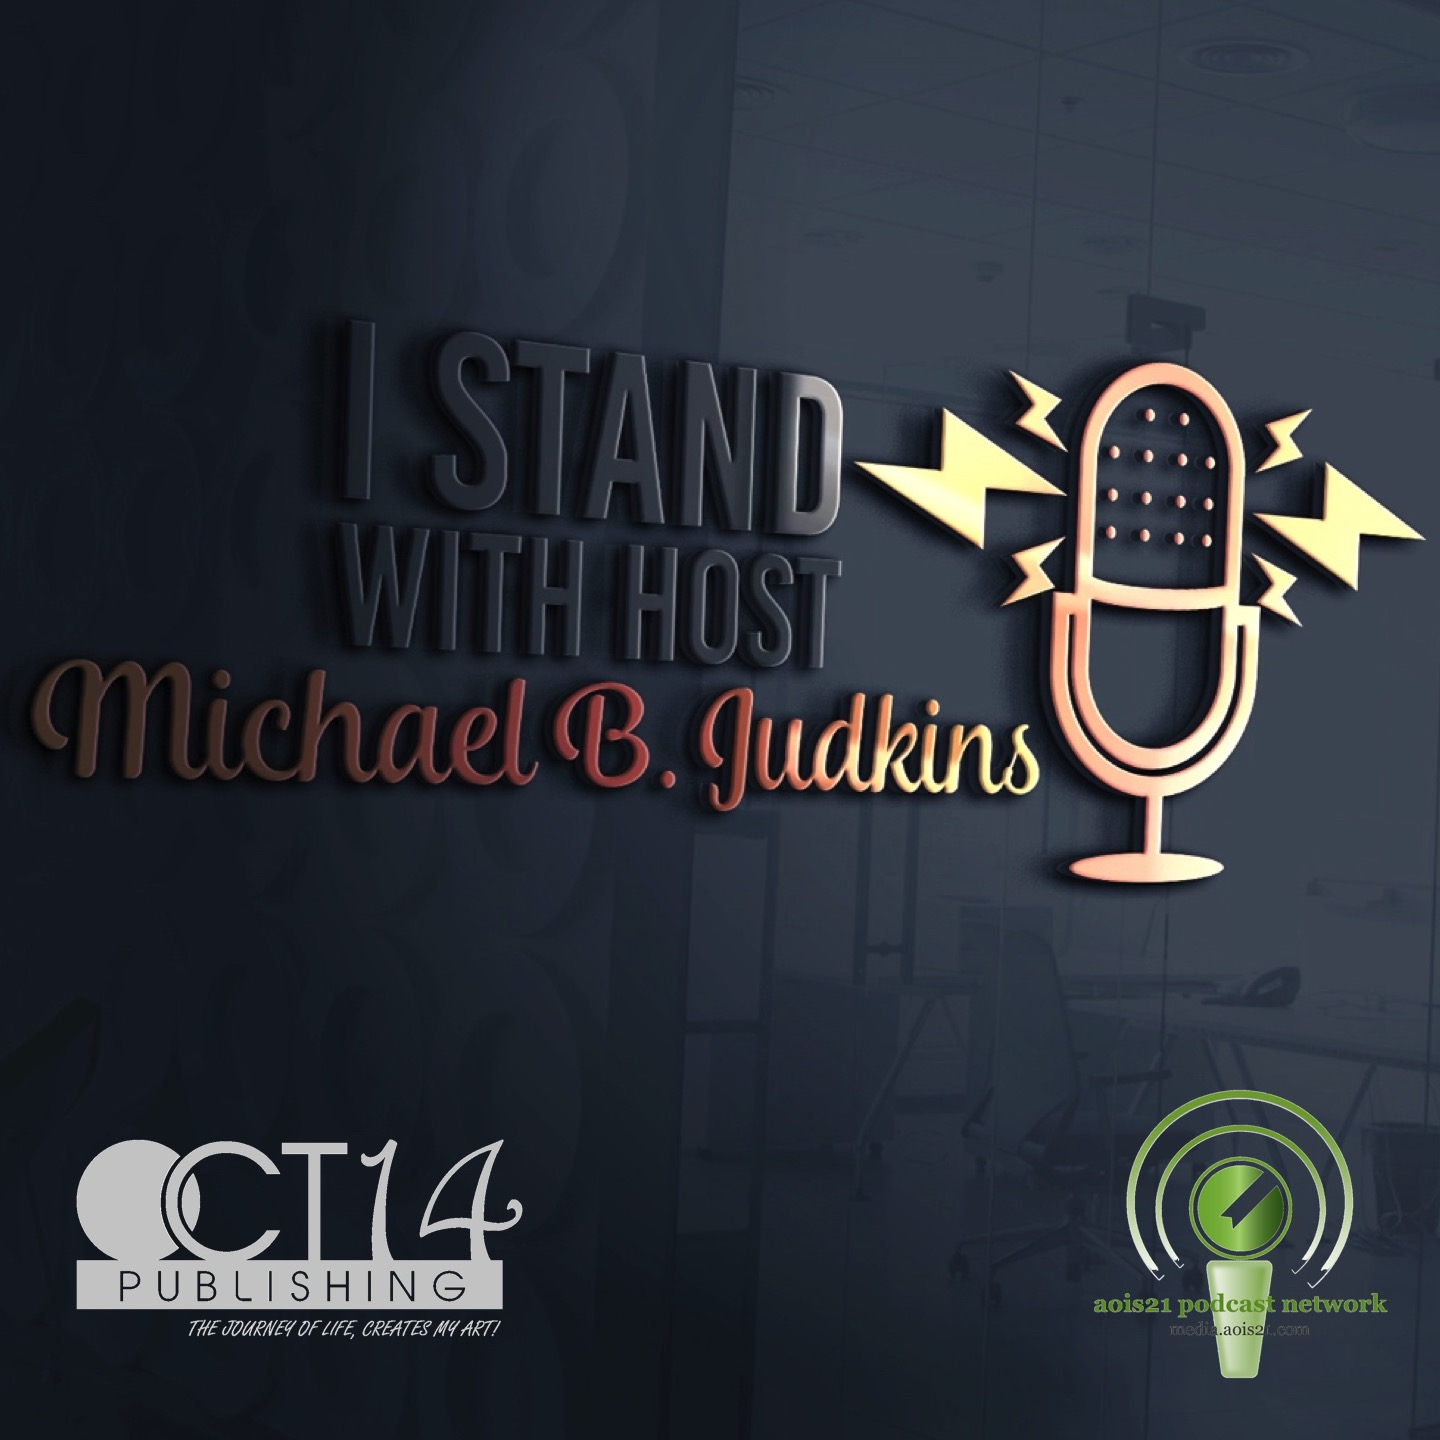 Click above to listen to 'I STAND with Host Michael B. Judkins'